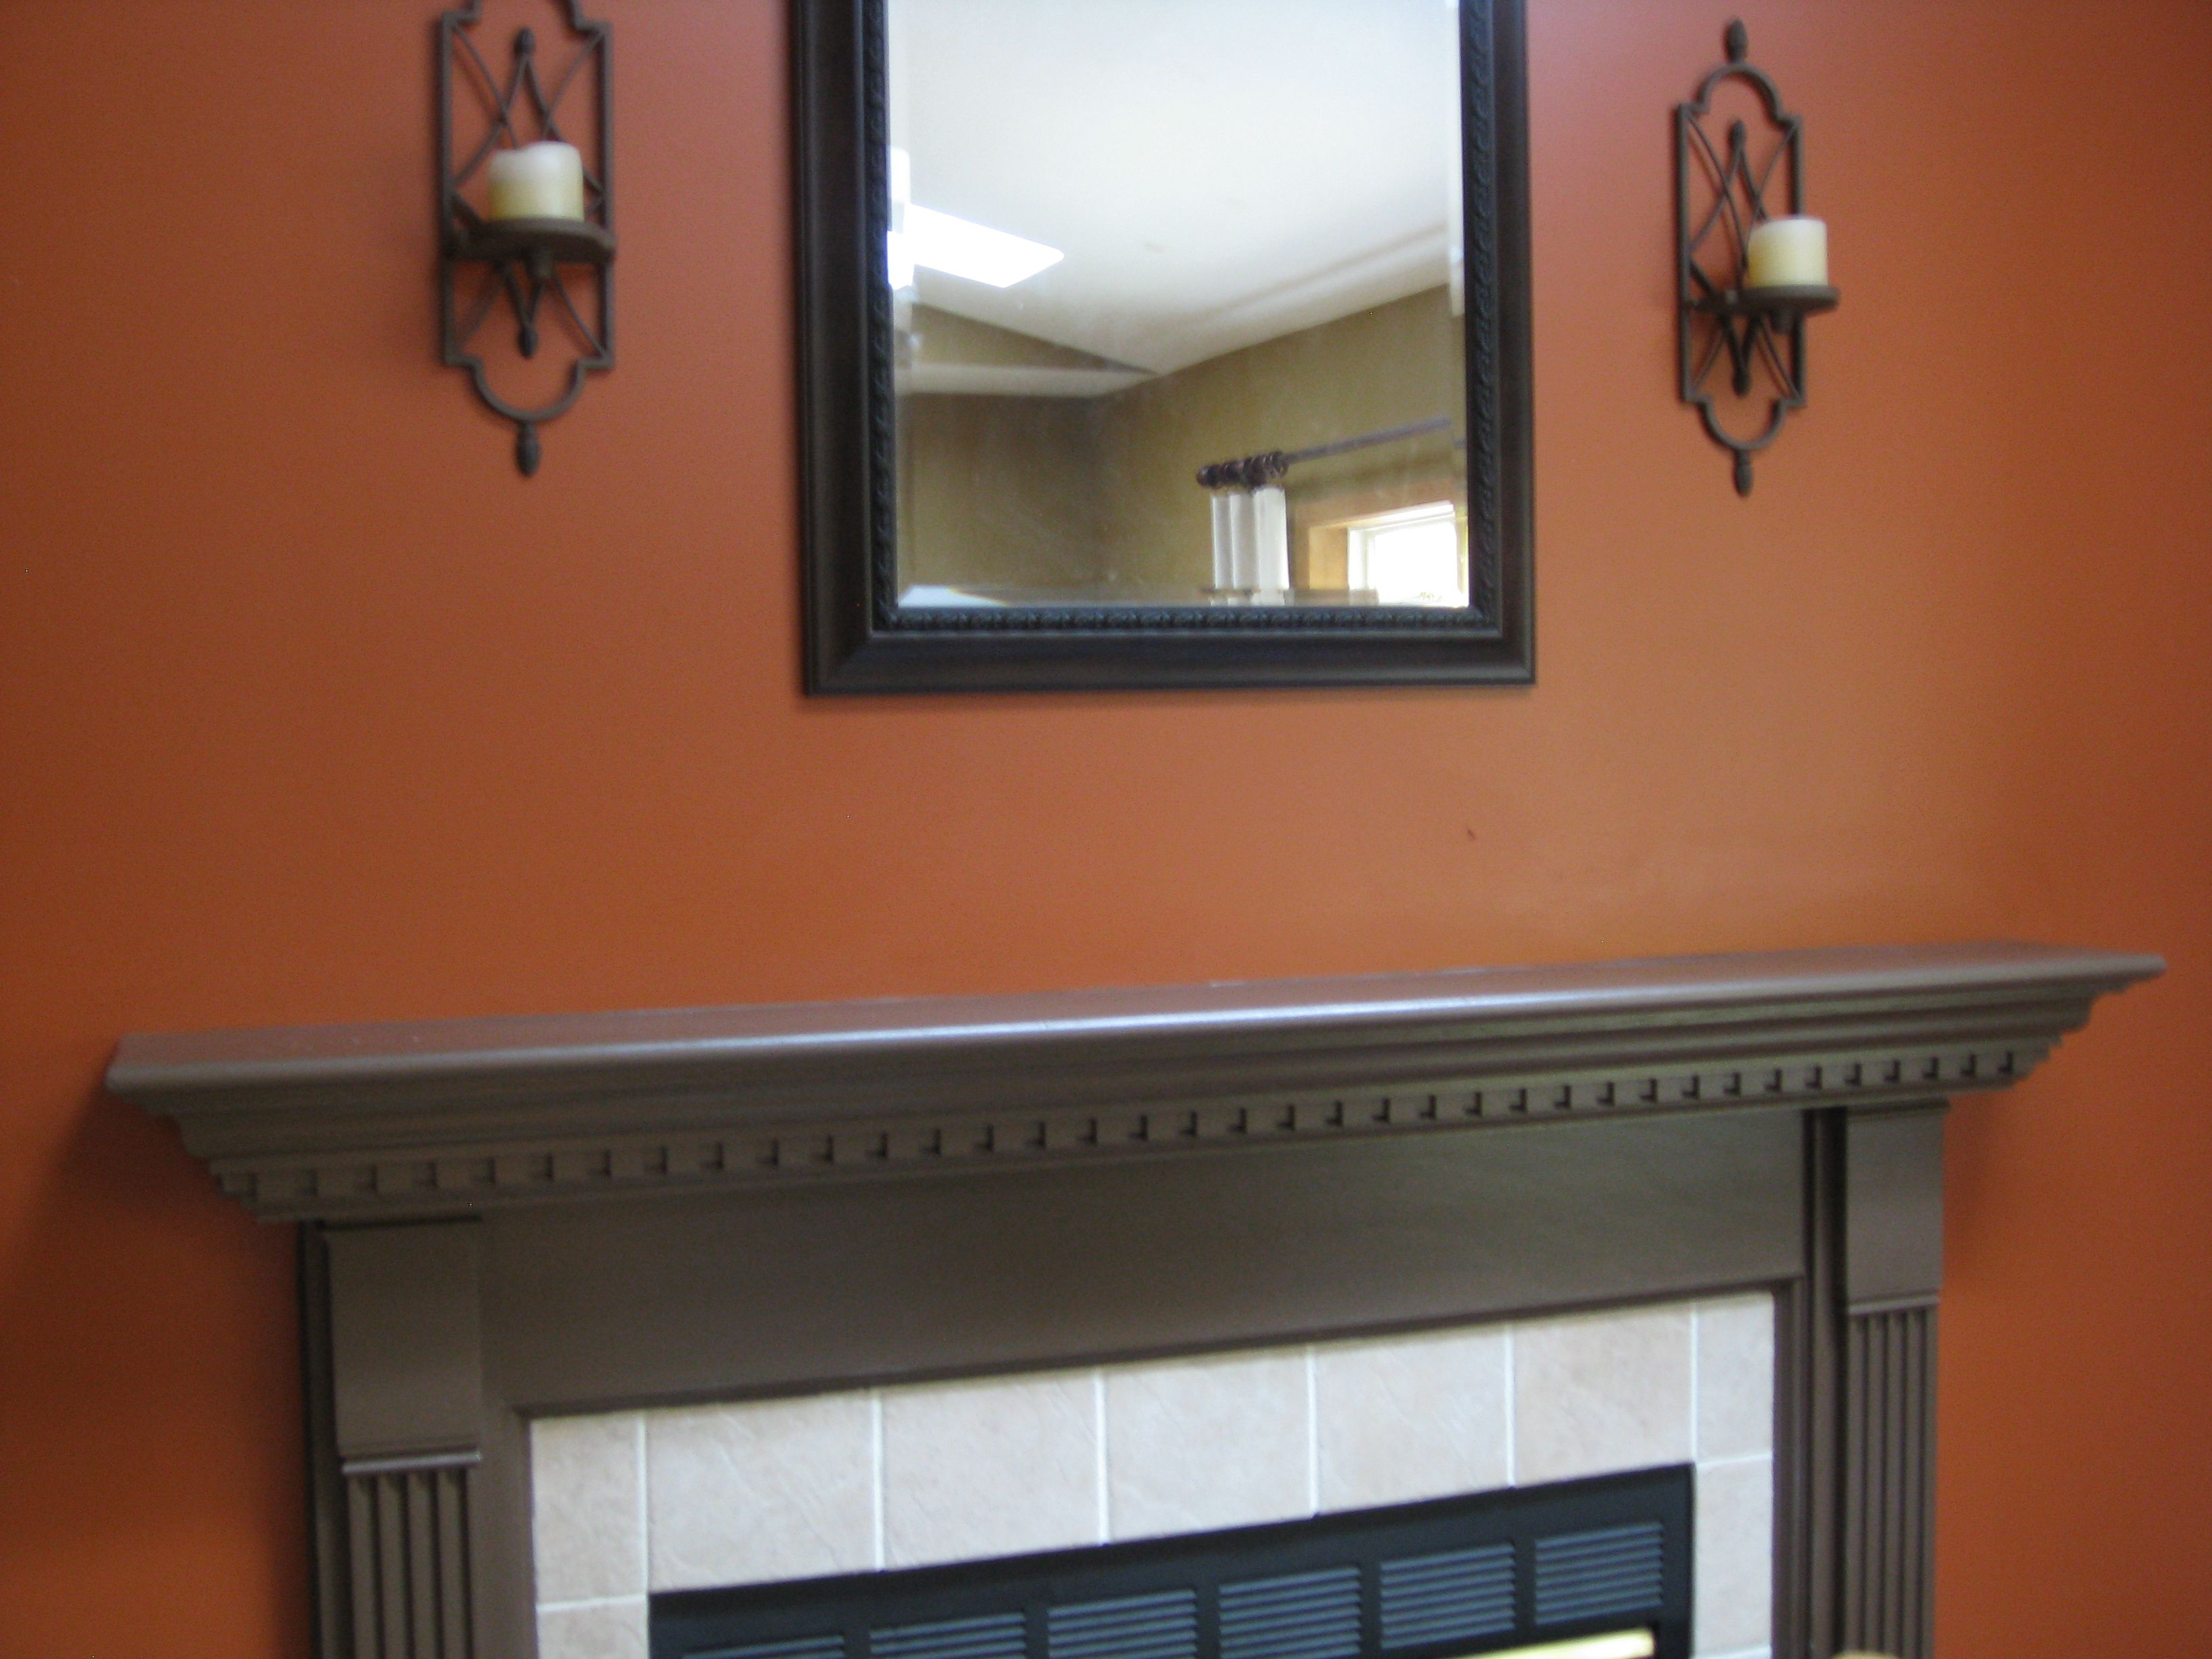 I painted my loft a burnt orange color like this i was a little nervous it might be too bold - How we paint your room ...